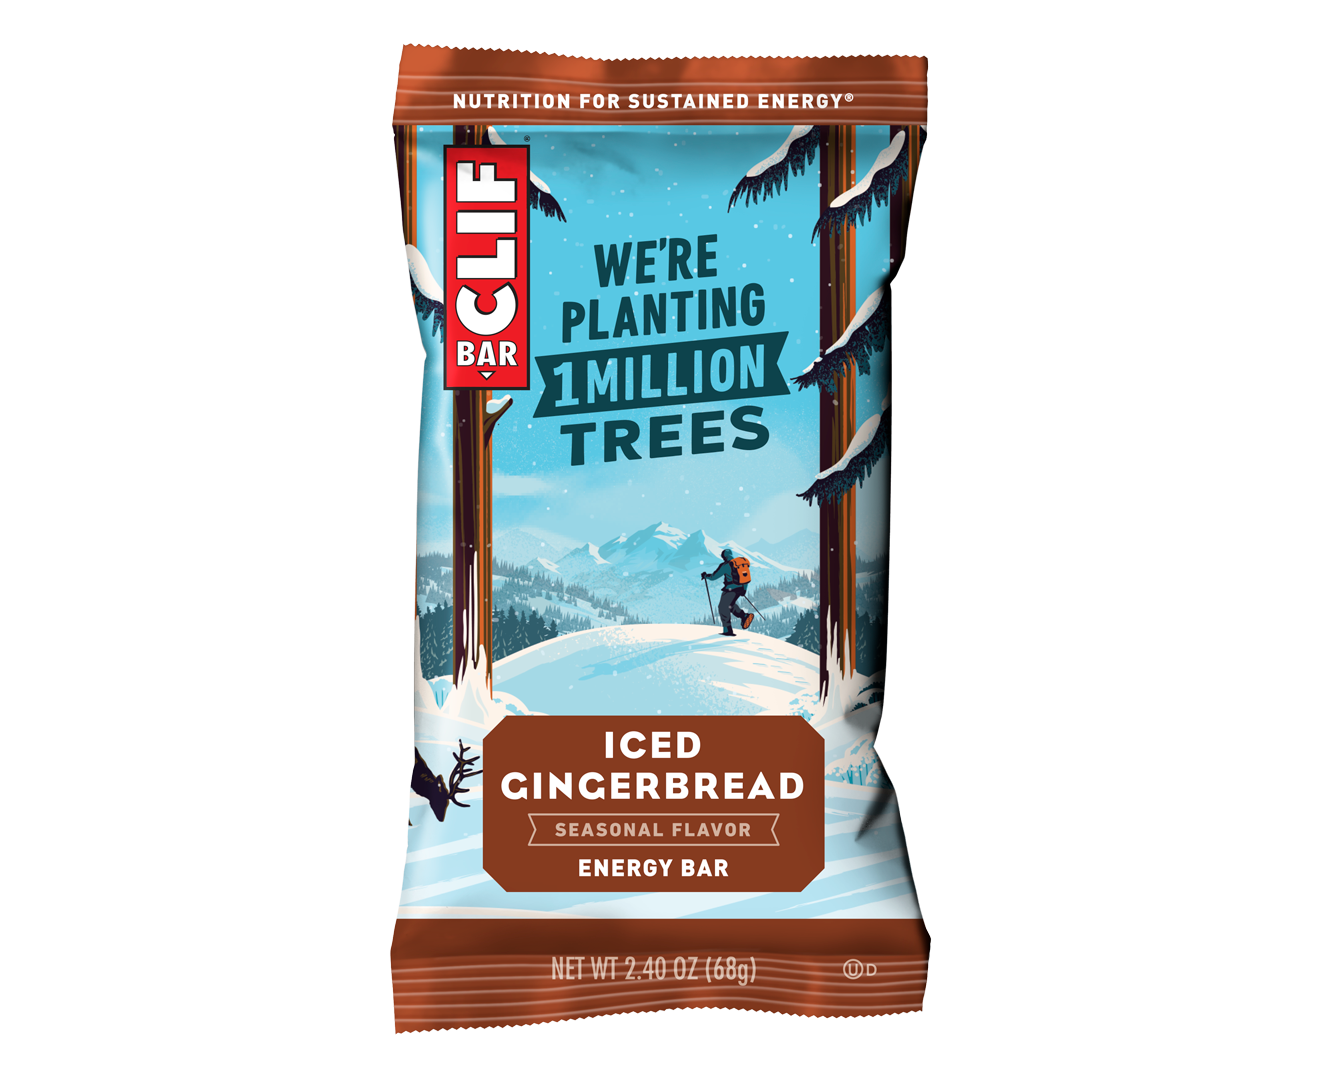 Iced Gingerbread packaging